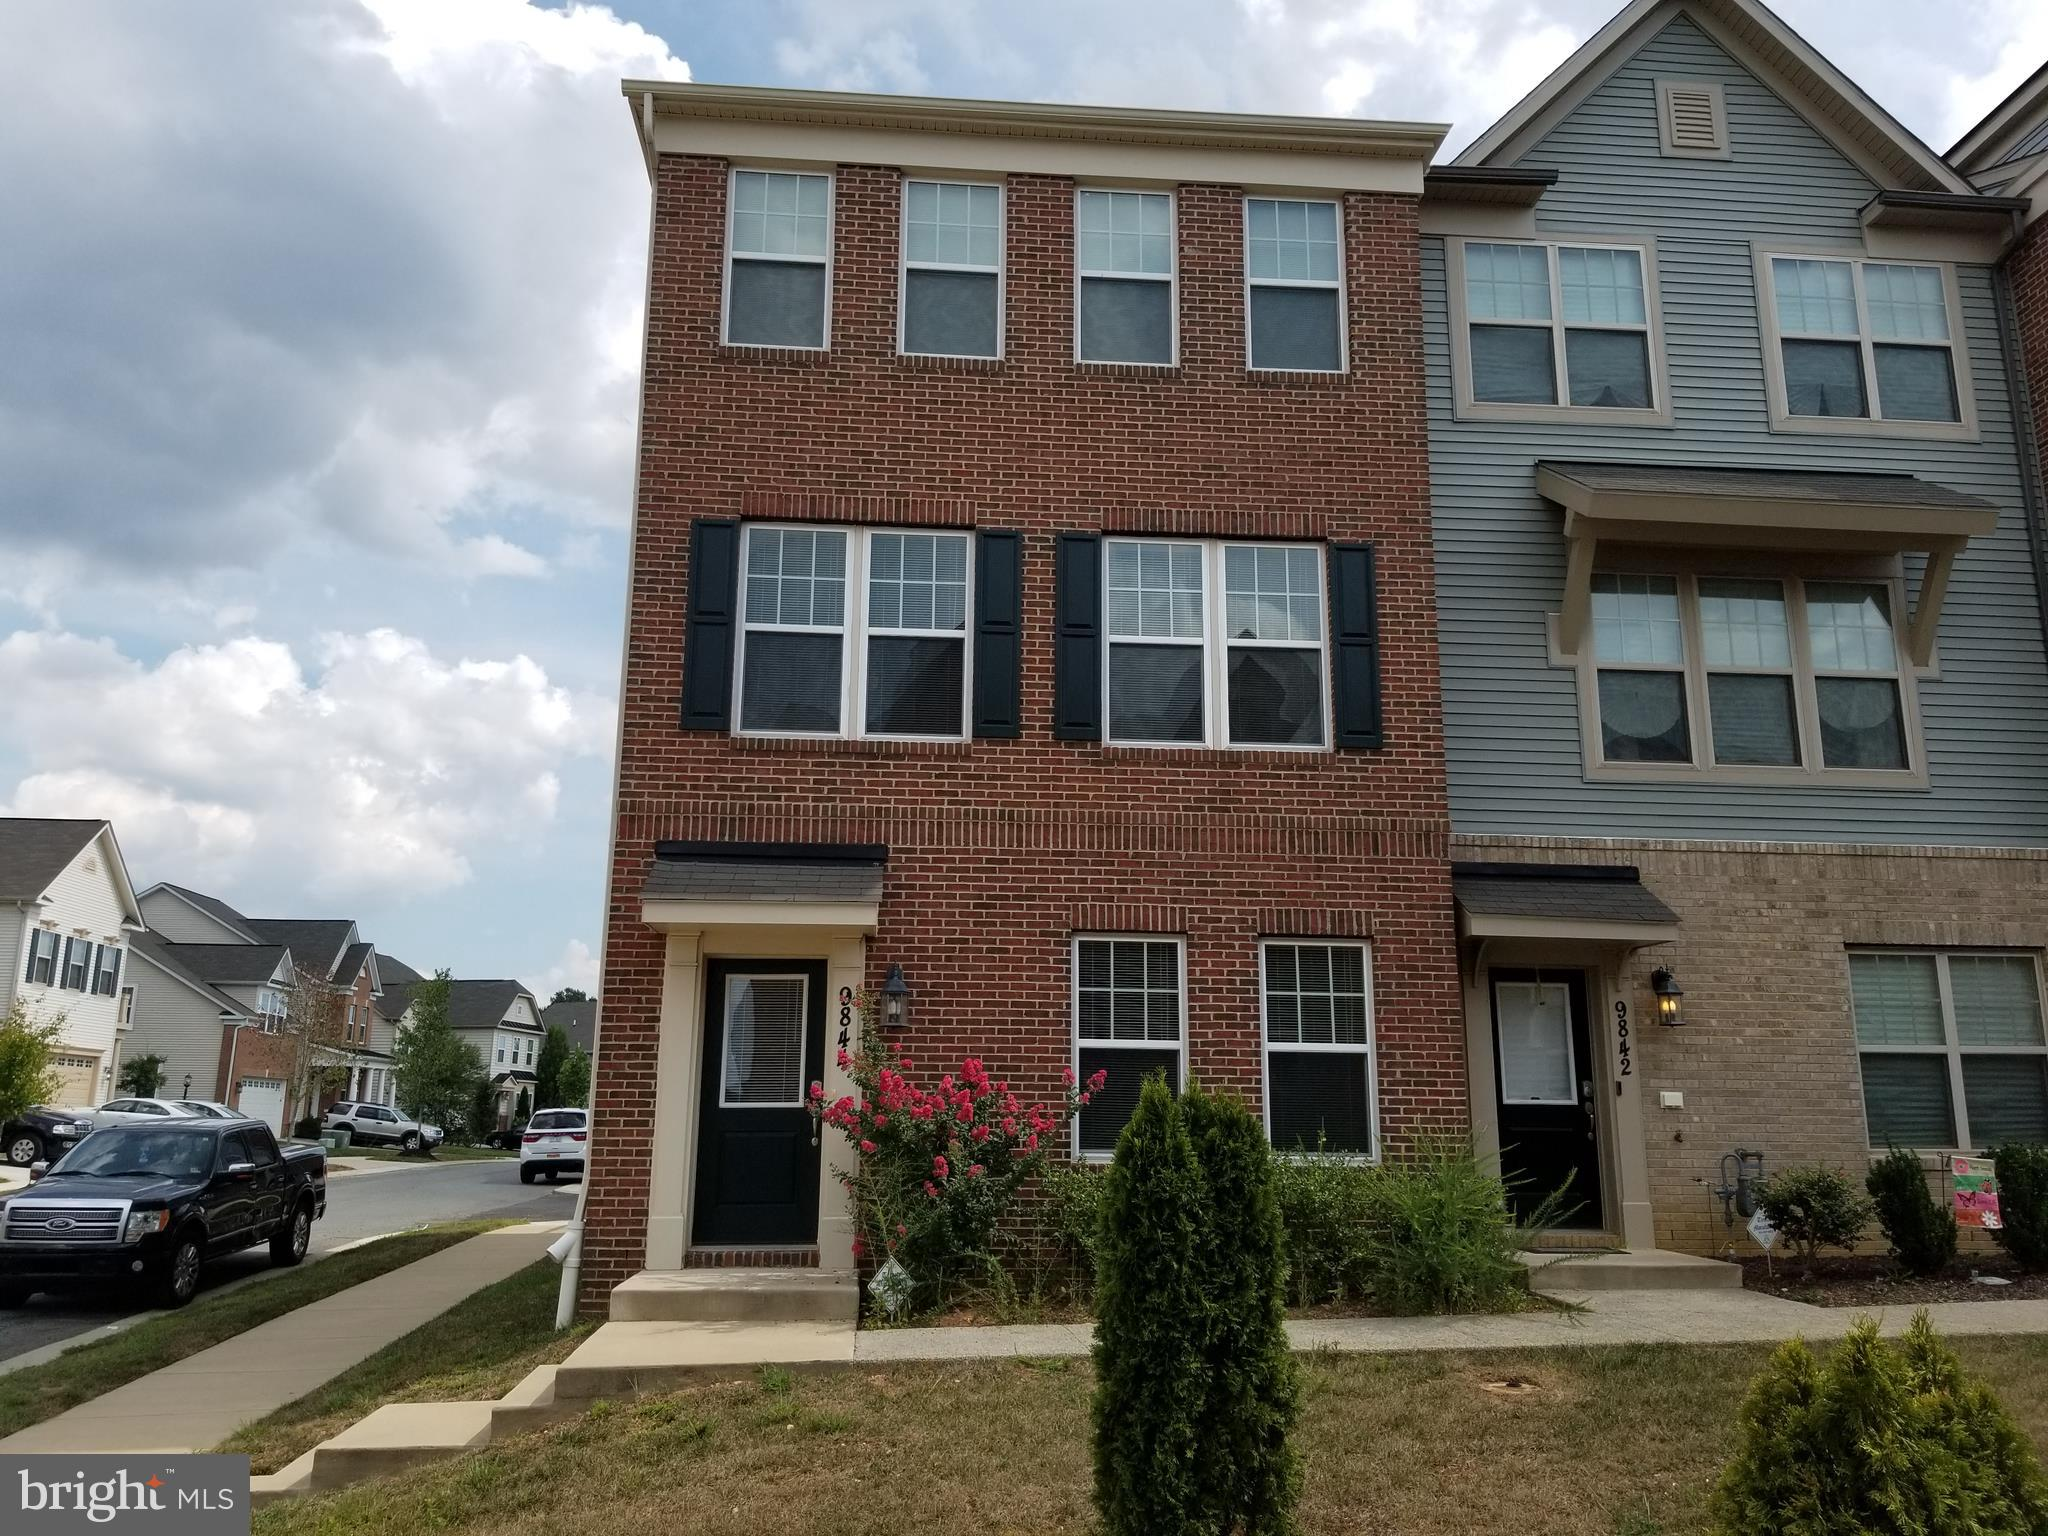 BEAUTIFUL COLONIAL TOWNHOME IN SCOTLAND HEIGHTS SUBDIVISON ZONED FOR NORTH POINTE HIGH SCHOOL.  THIS